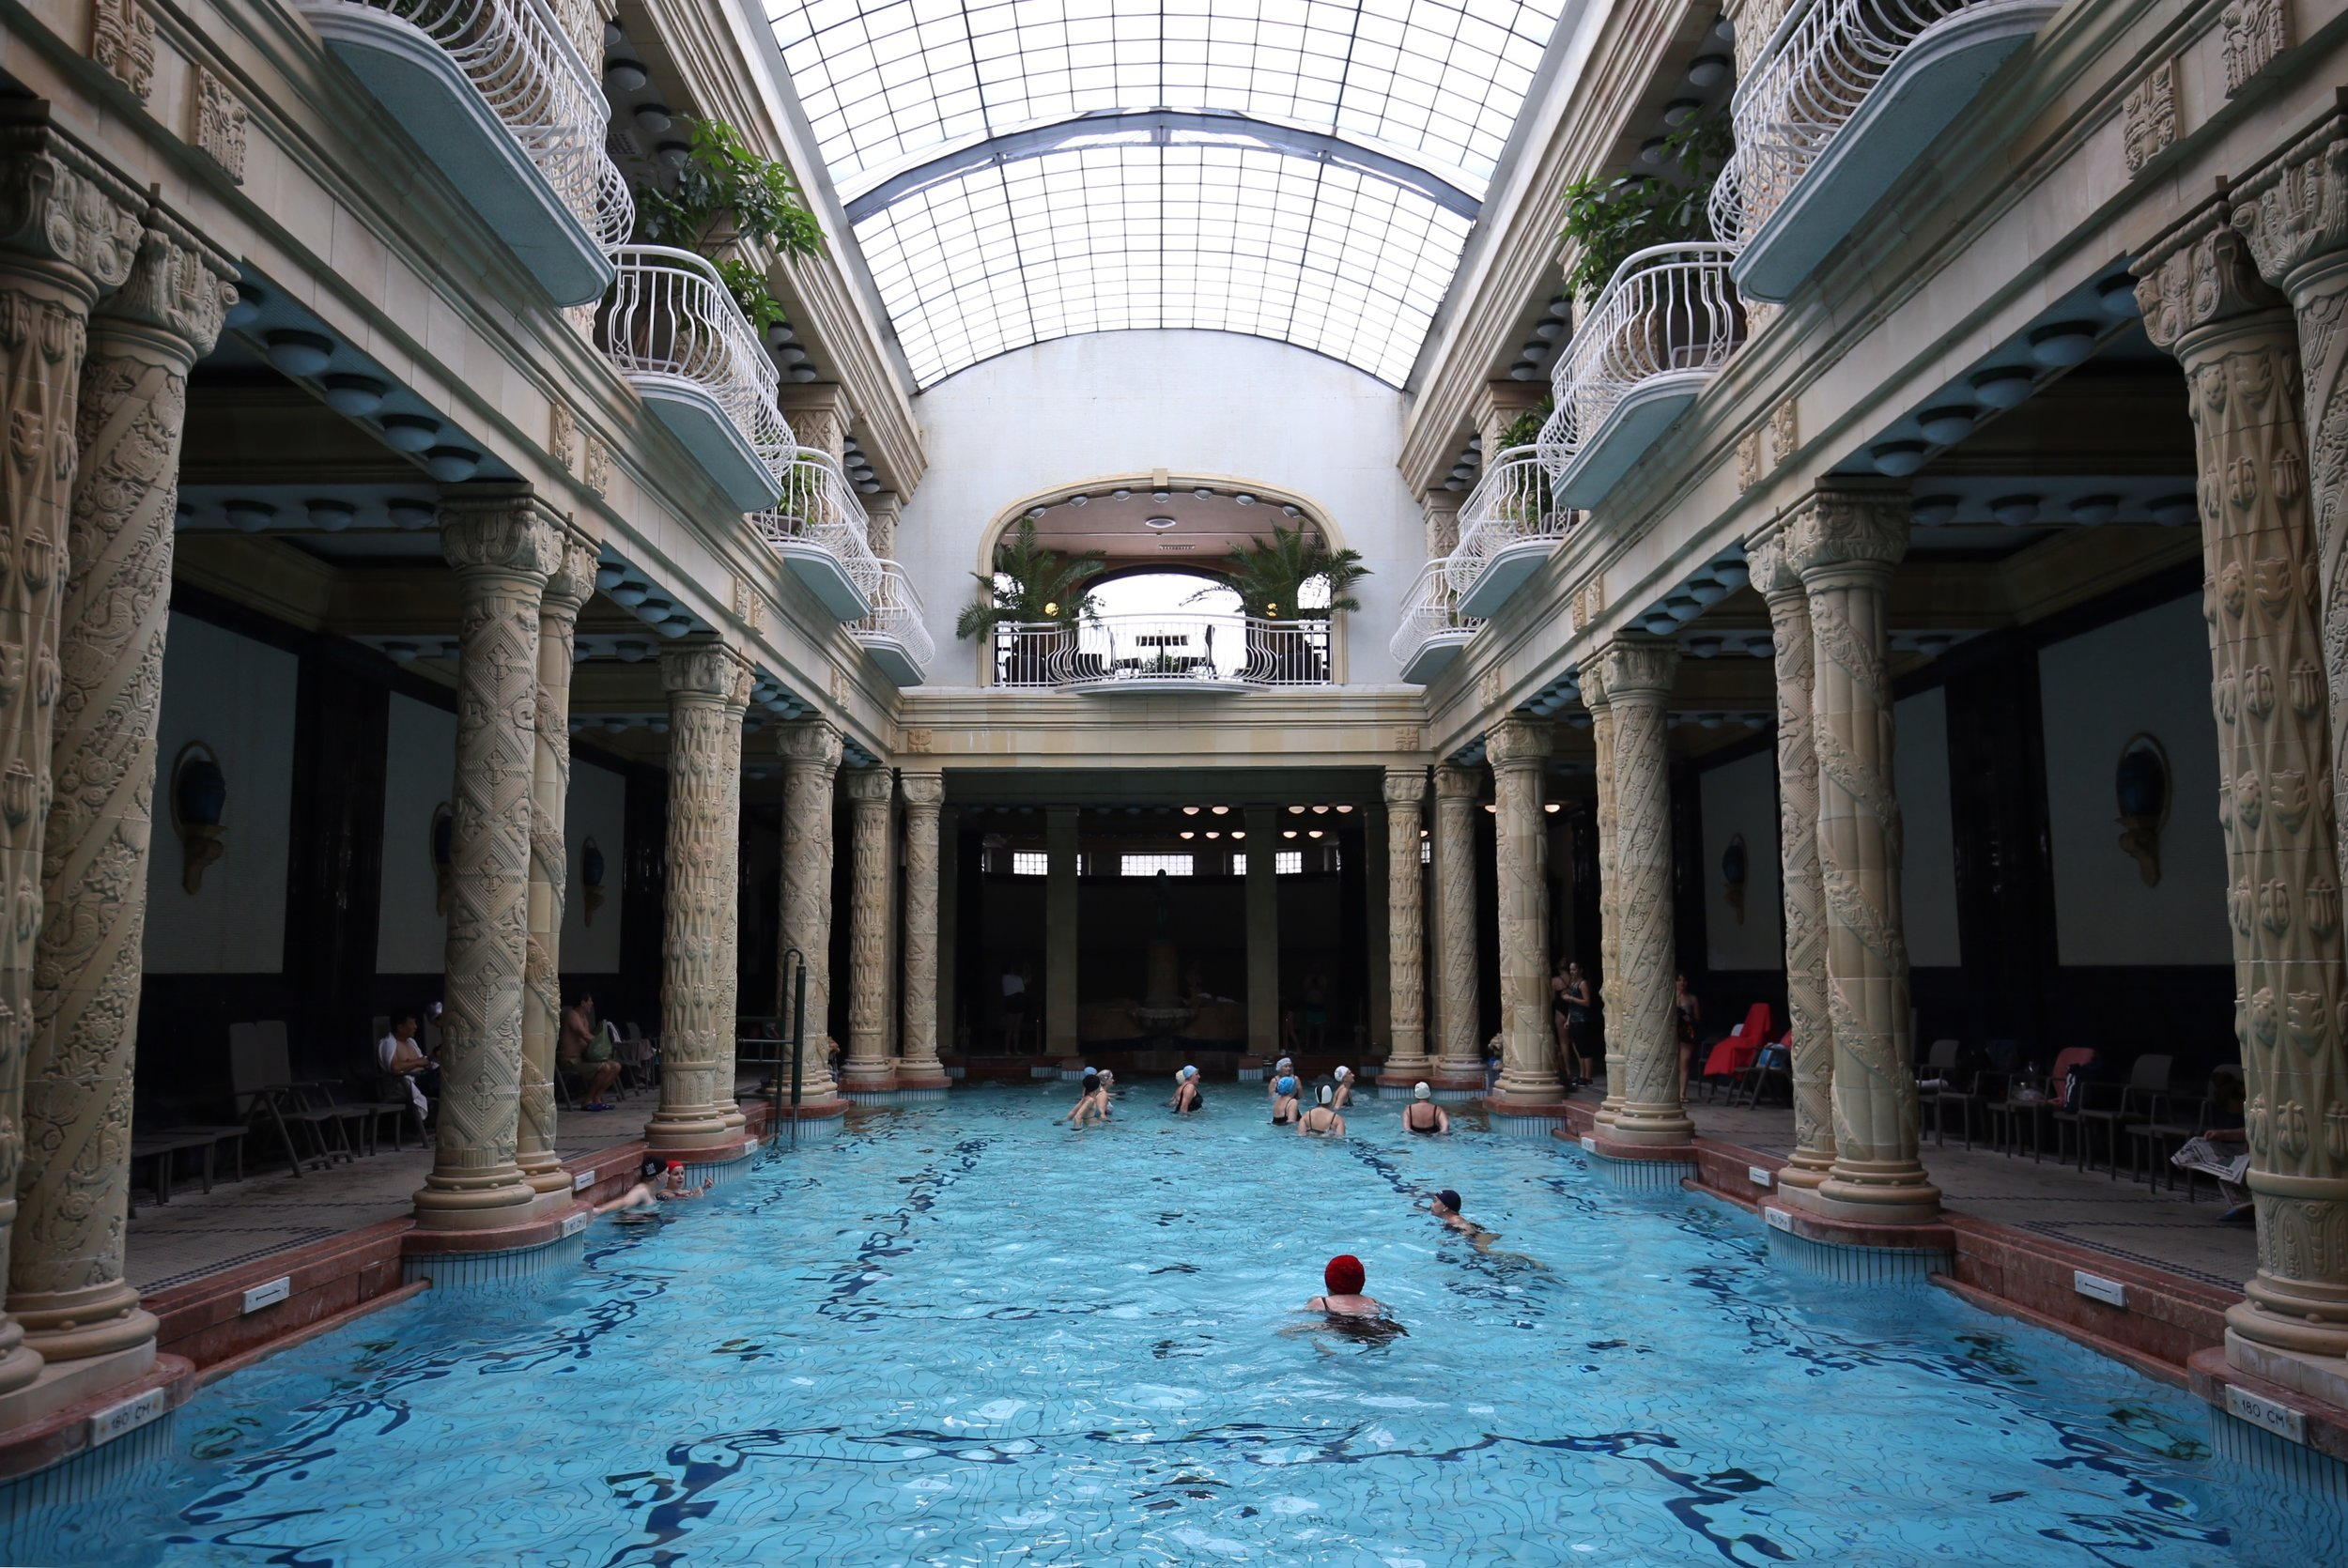 Bathers swim in an old world bath-house, in the Gellert Hotel, Budapest.